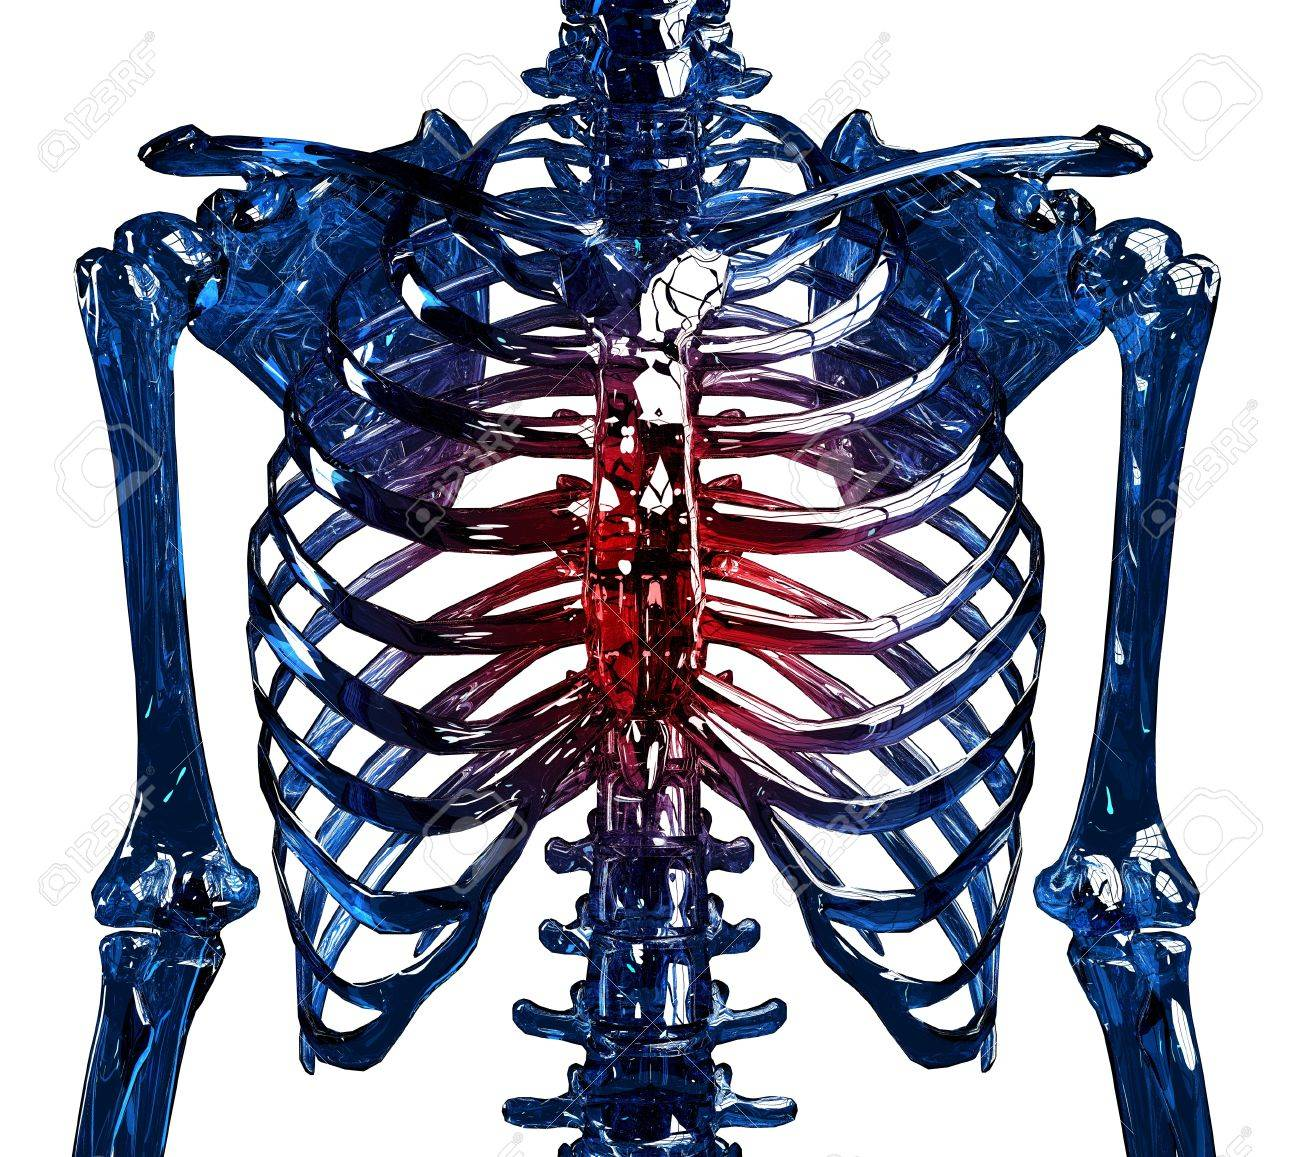 Frontal View Of A Human Skeleton Chest And Ribs Made In 3d Showing